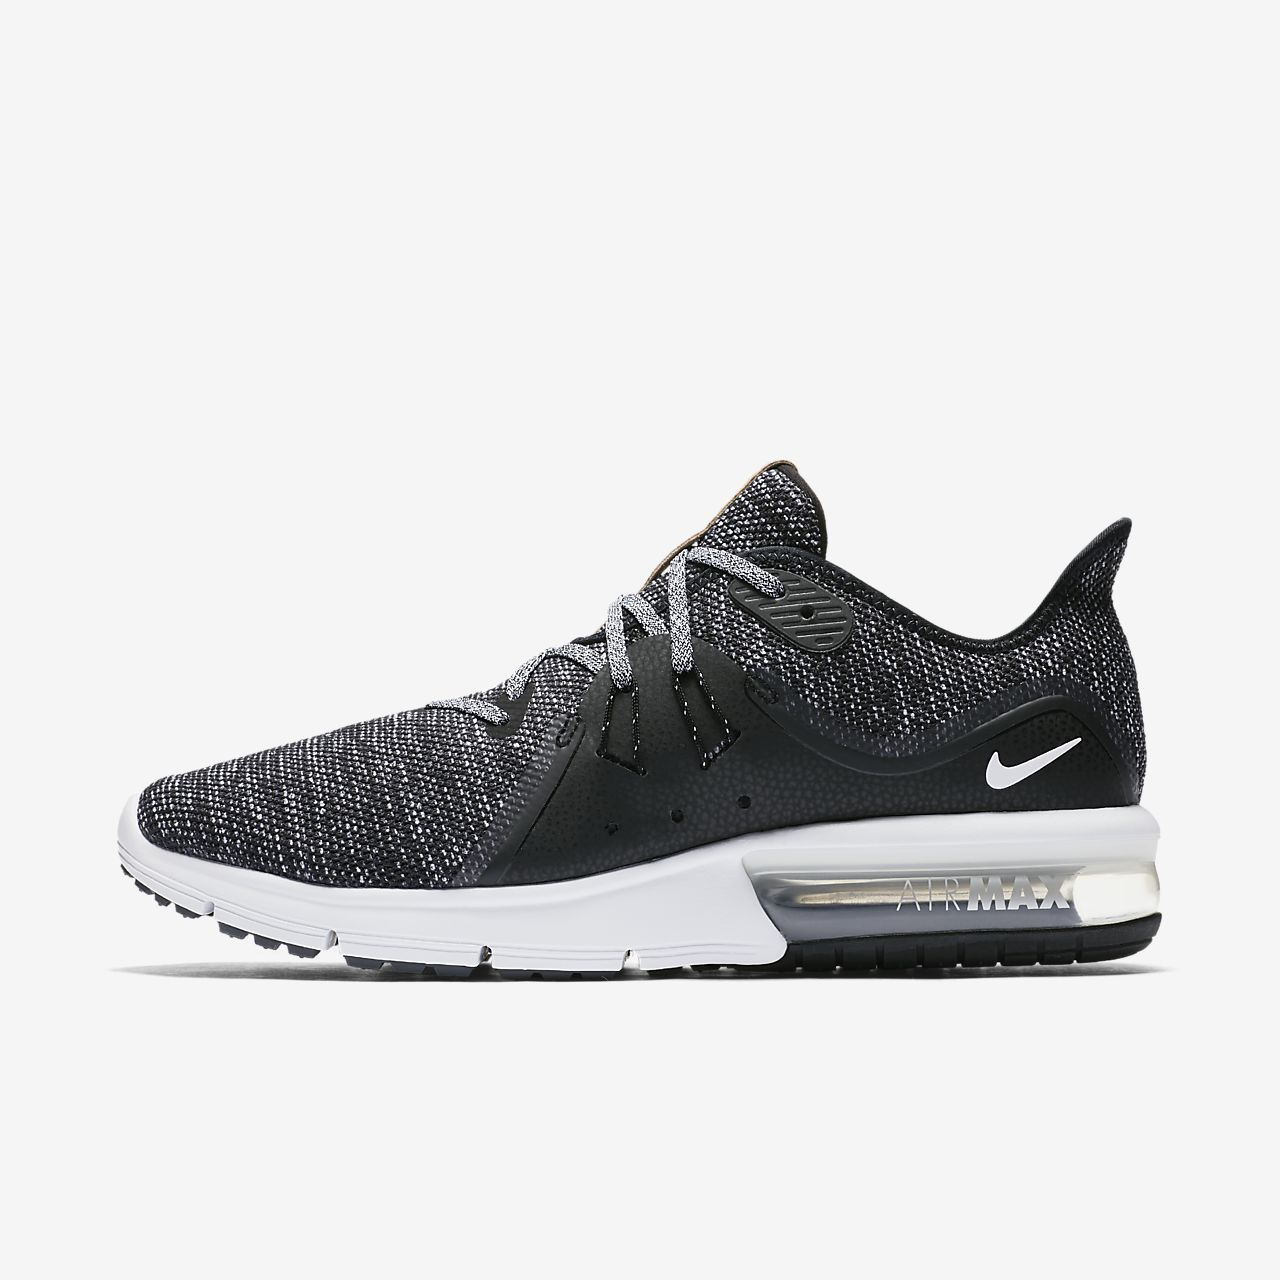 dbbffa18a4a13c Nike Air Max Sequent 3 Men s Shoe. Nike.com GB